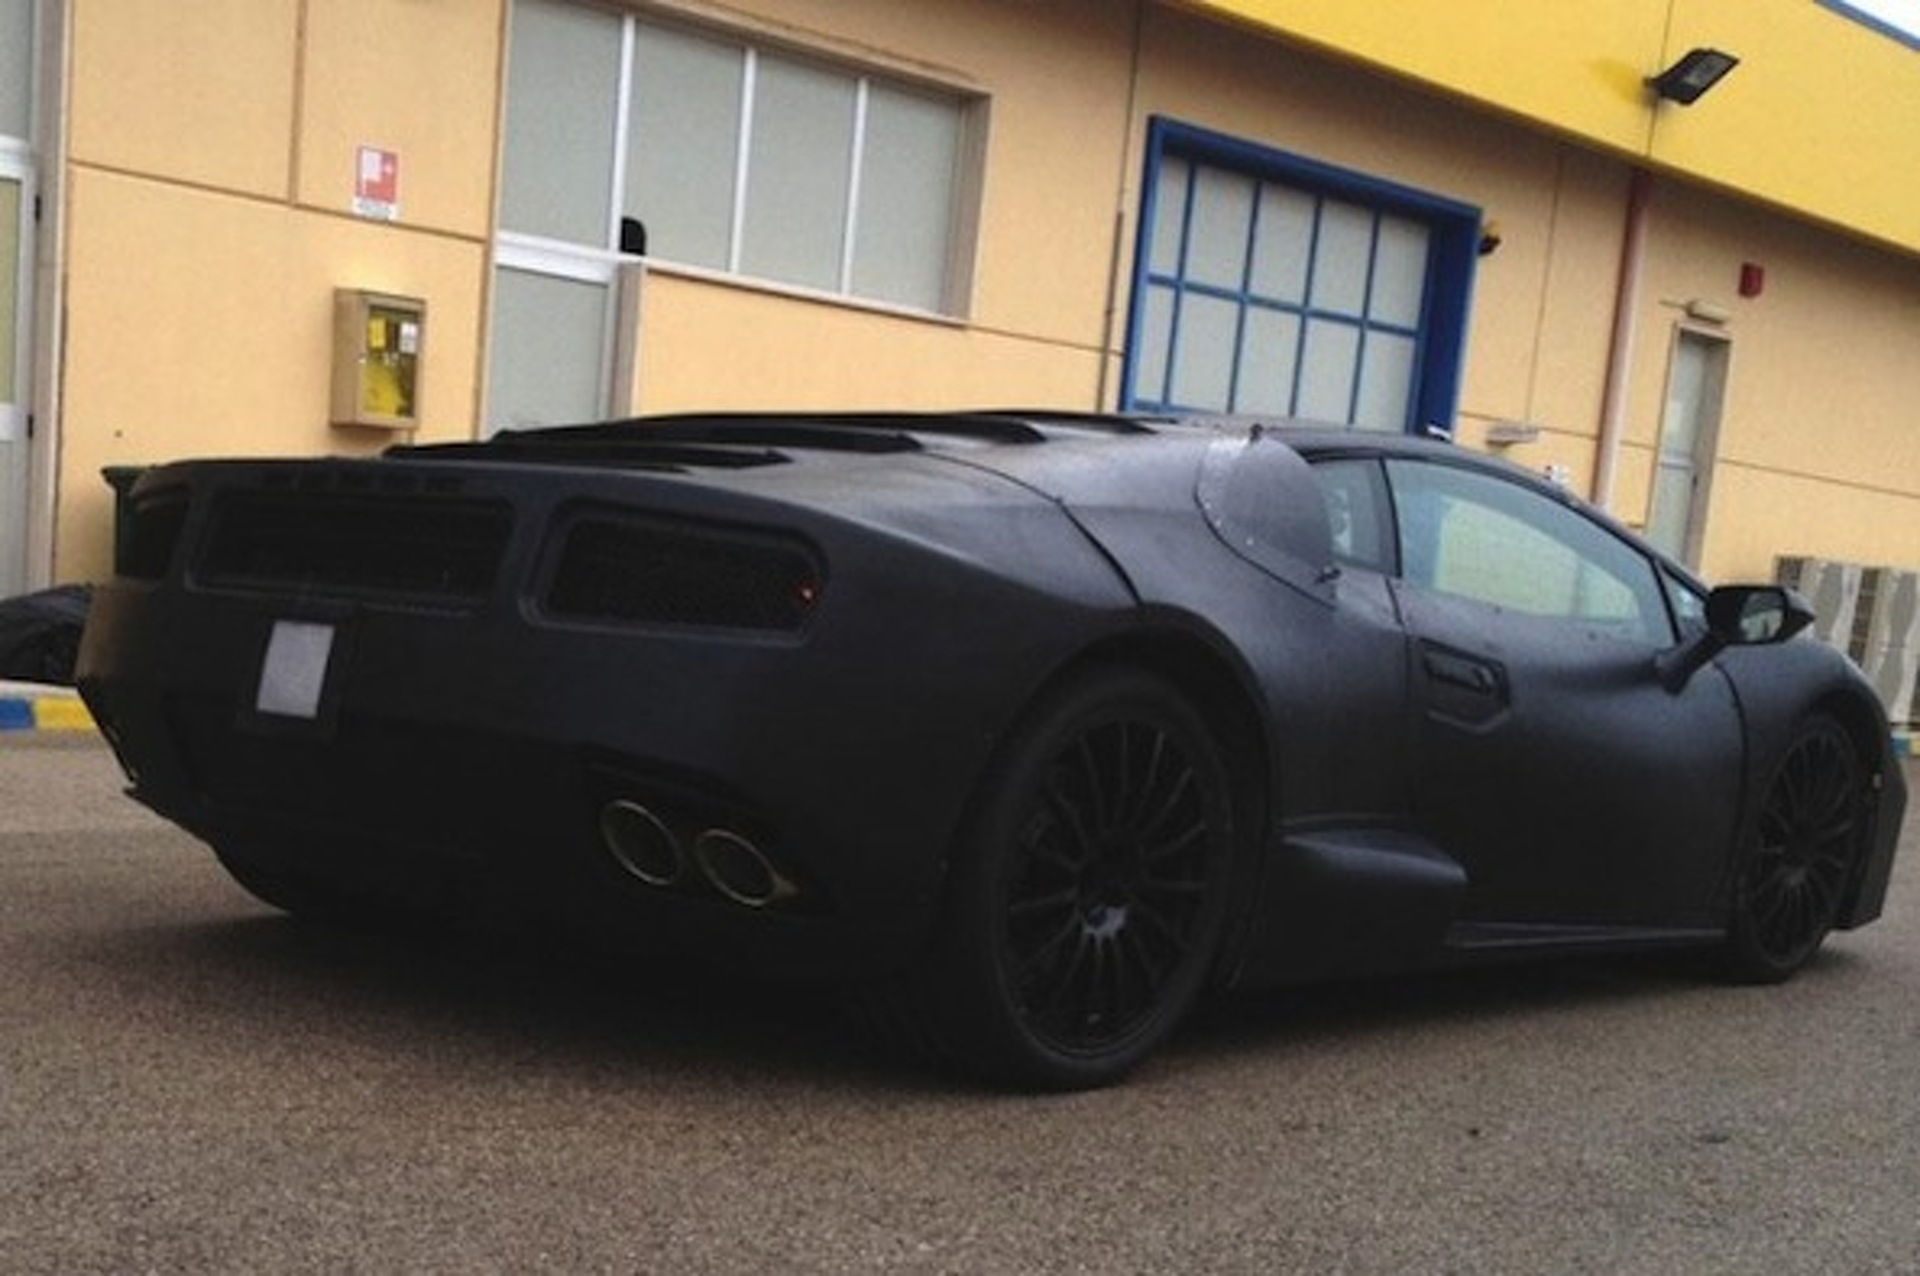 Lamborghini Gallardo Replacement Spied Ahead of Frankfurt